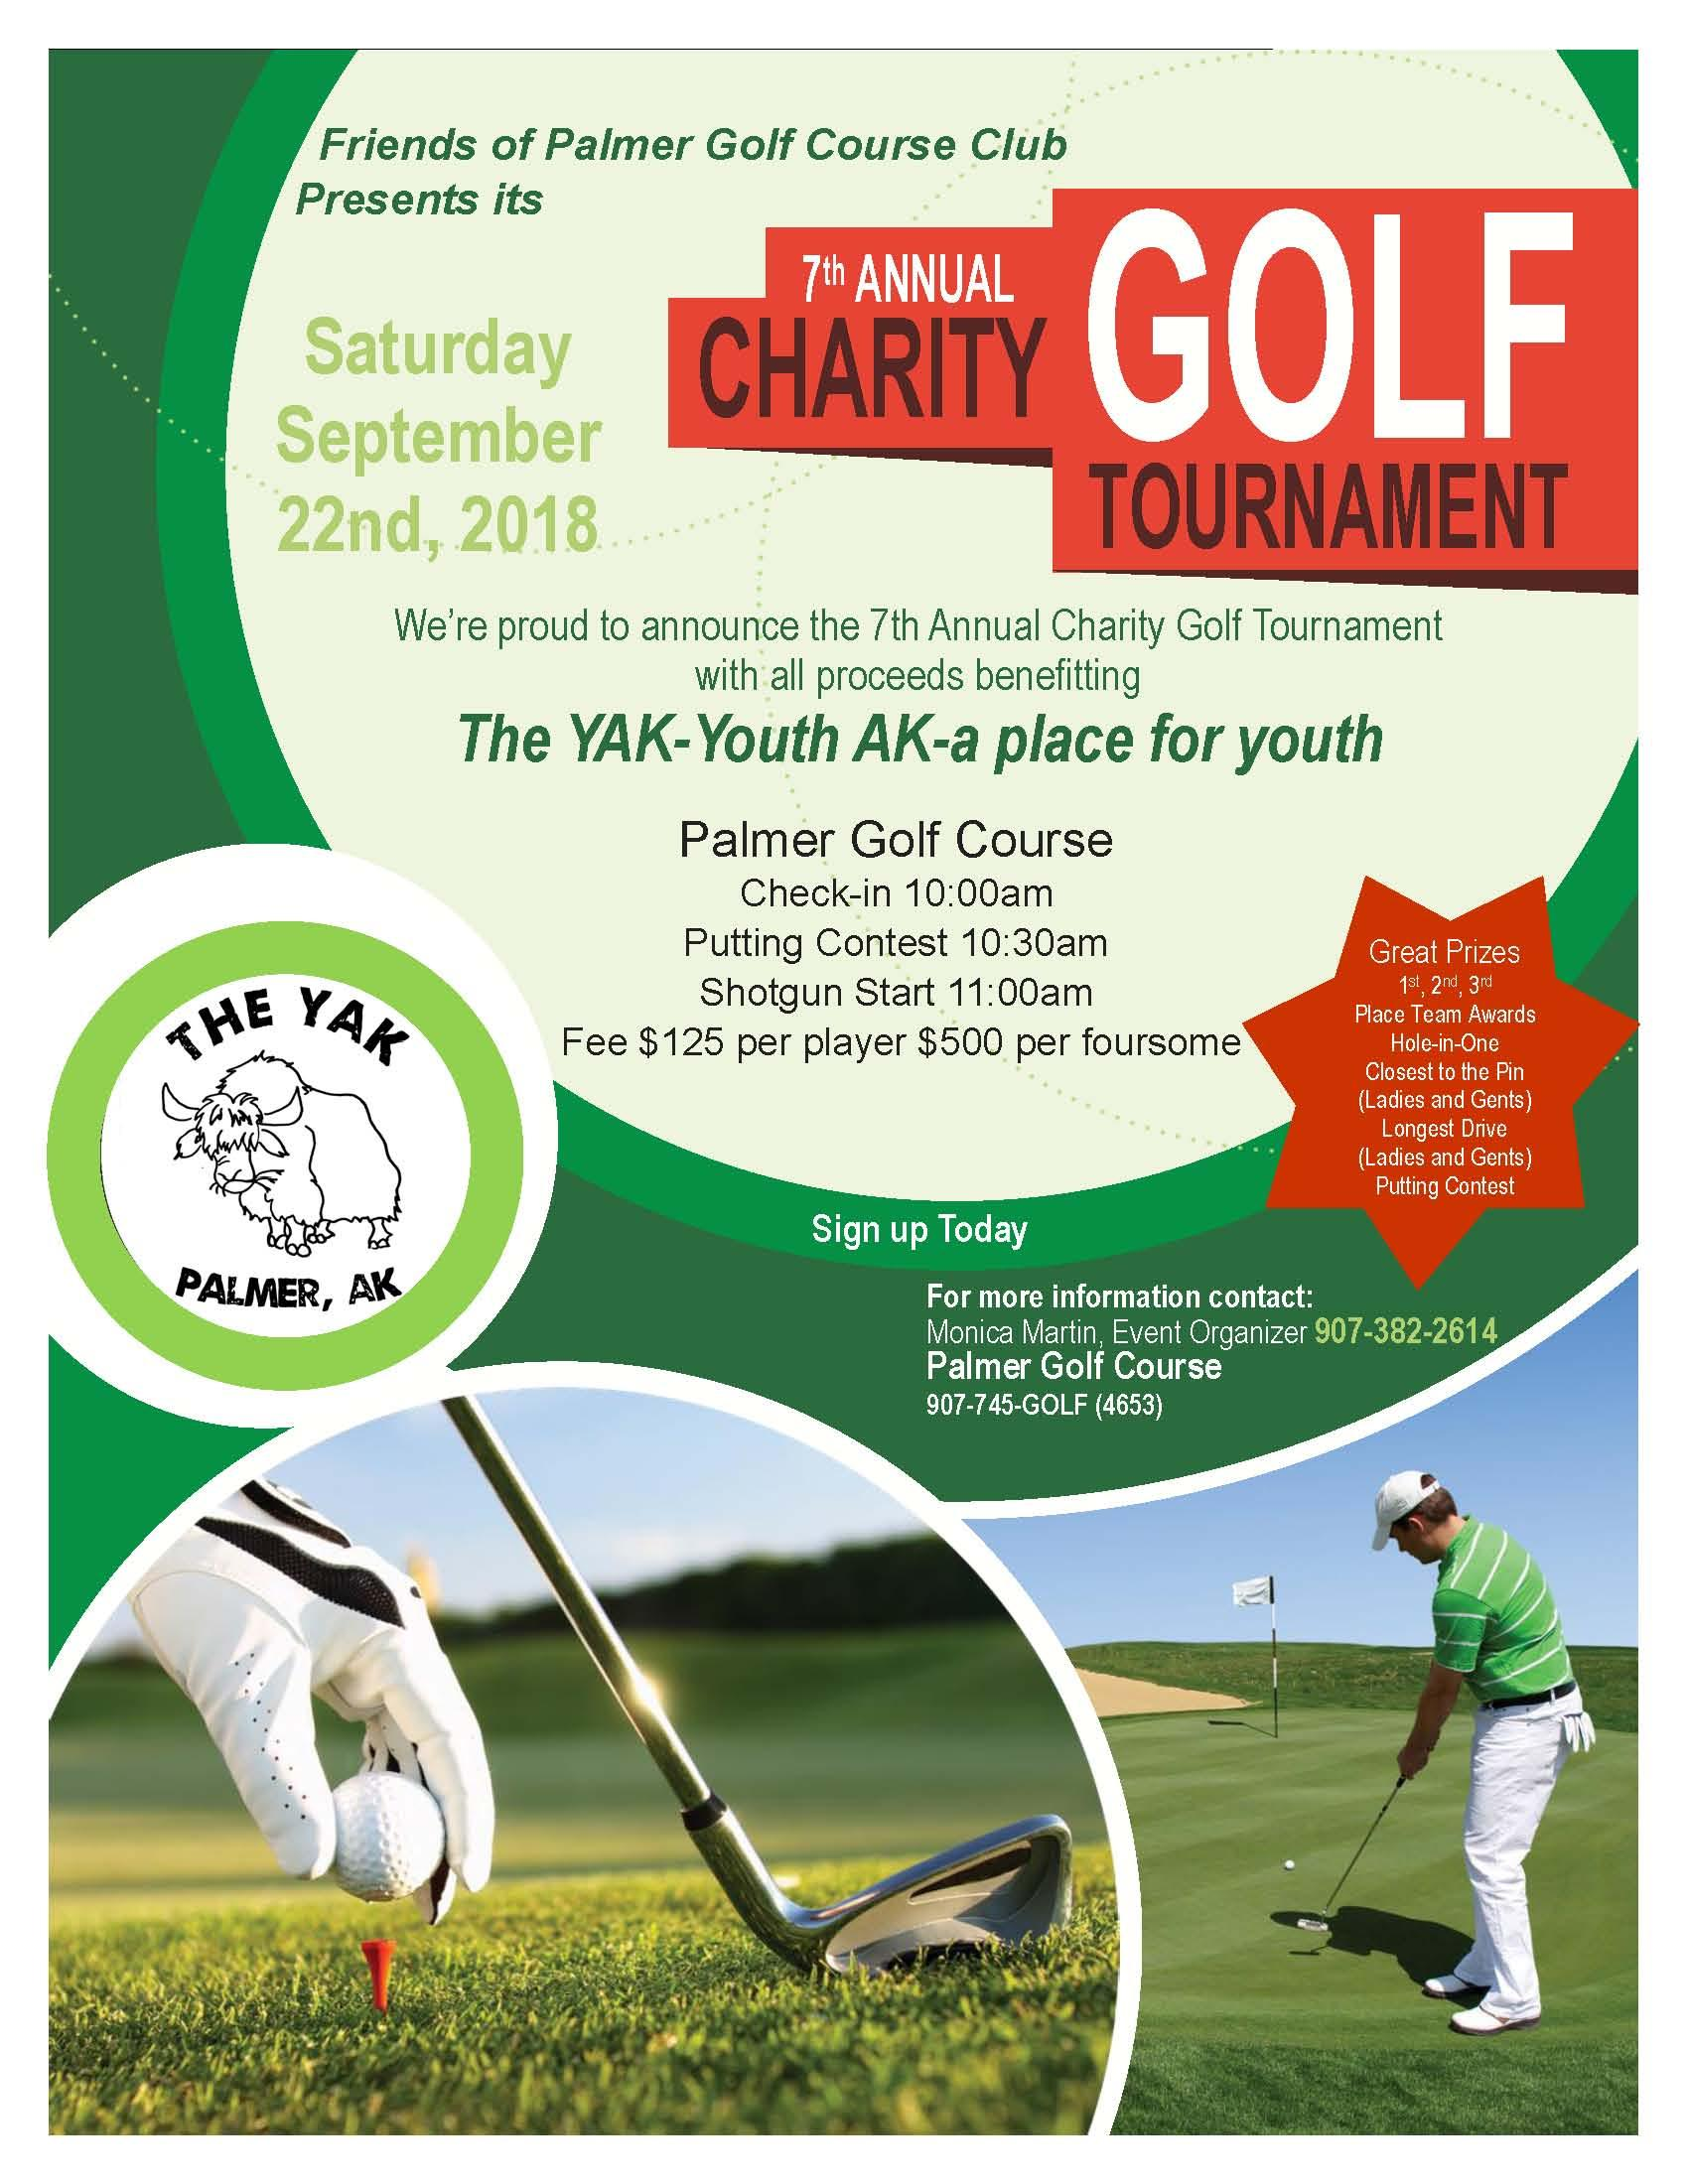 7th Annual Charity Golf Tournament presented by Friends of Palmer Golf Course Club